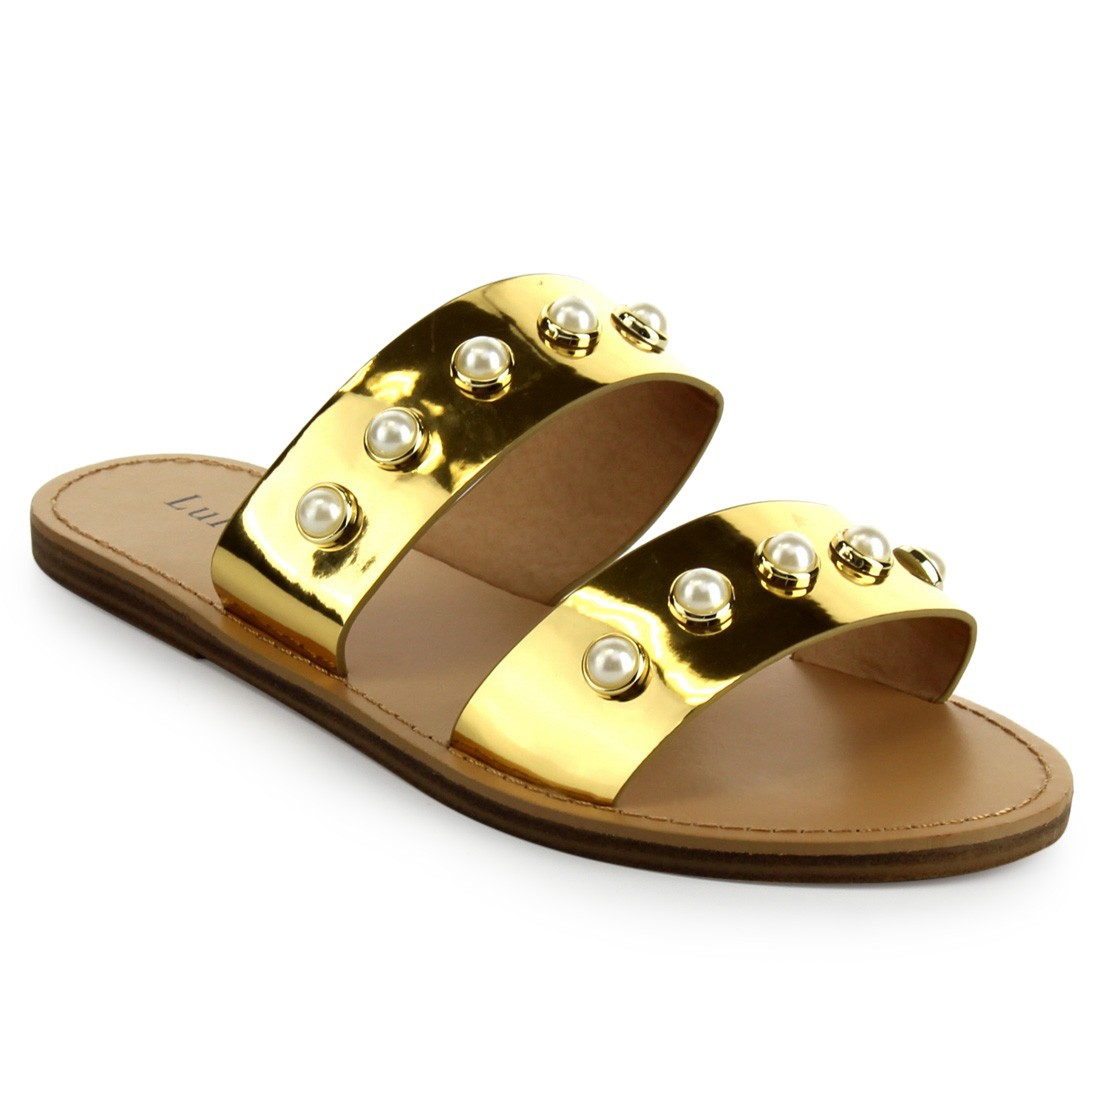 PEARL STRAP SANDALS SLIDES SLIPPERS - orangeshine.com